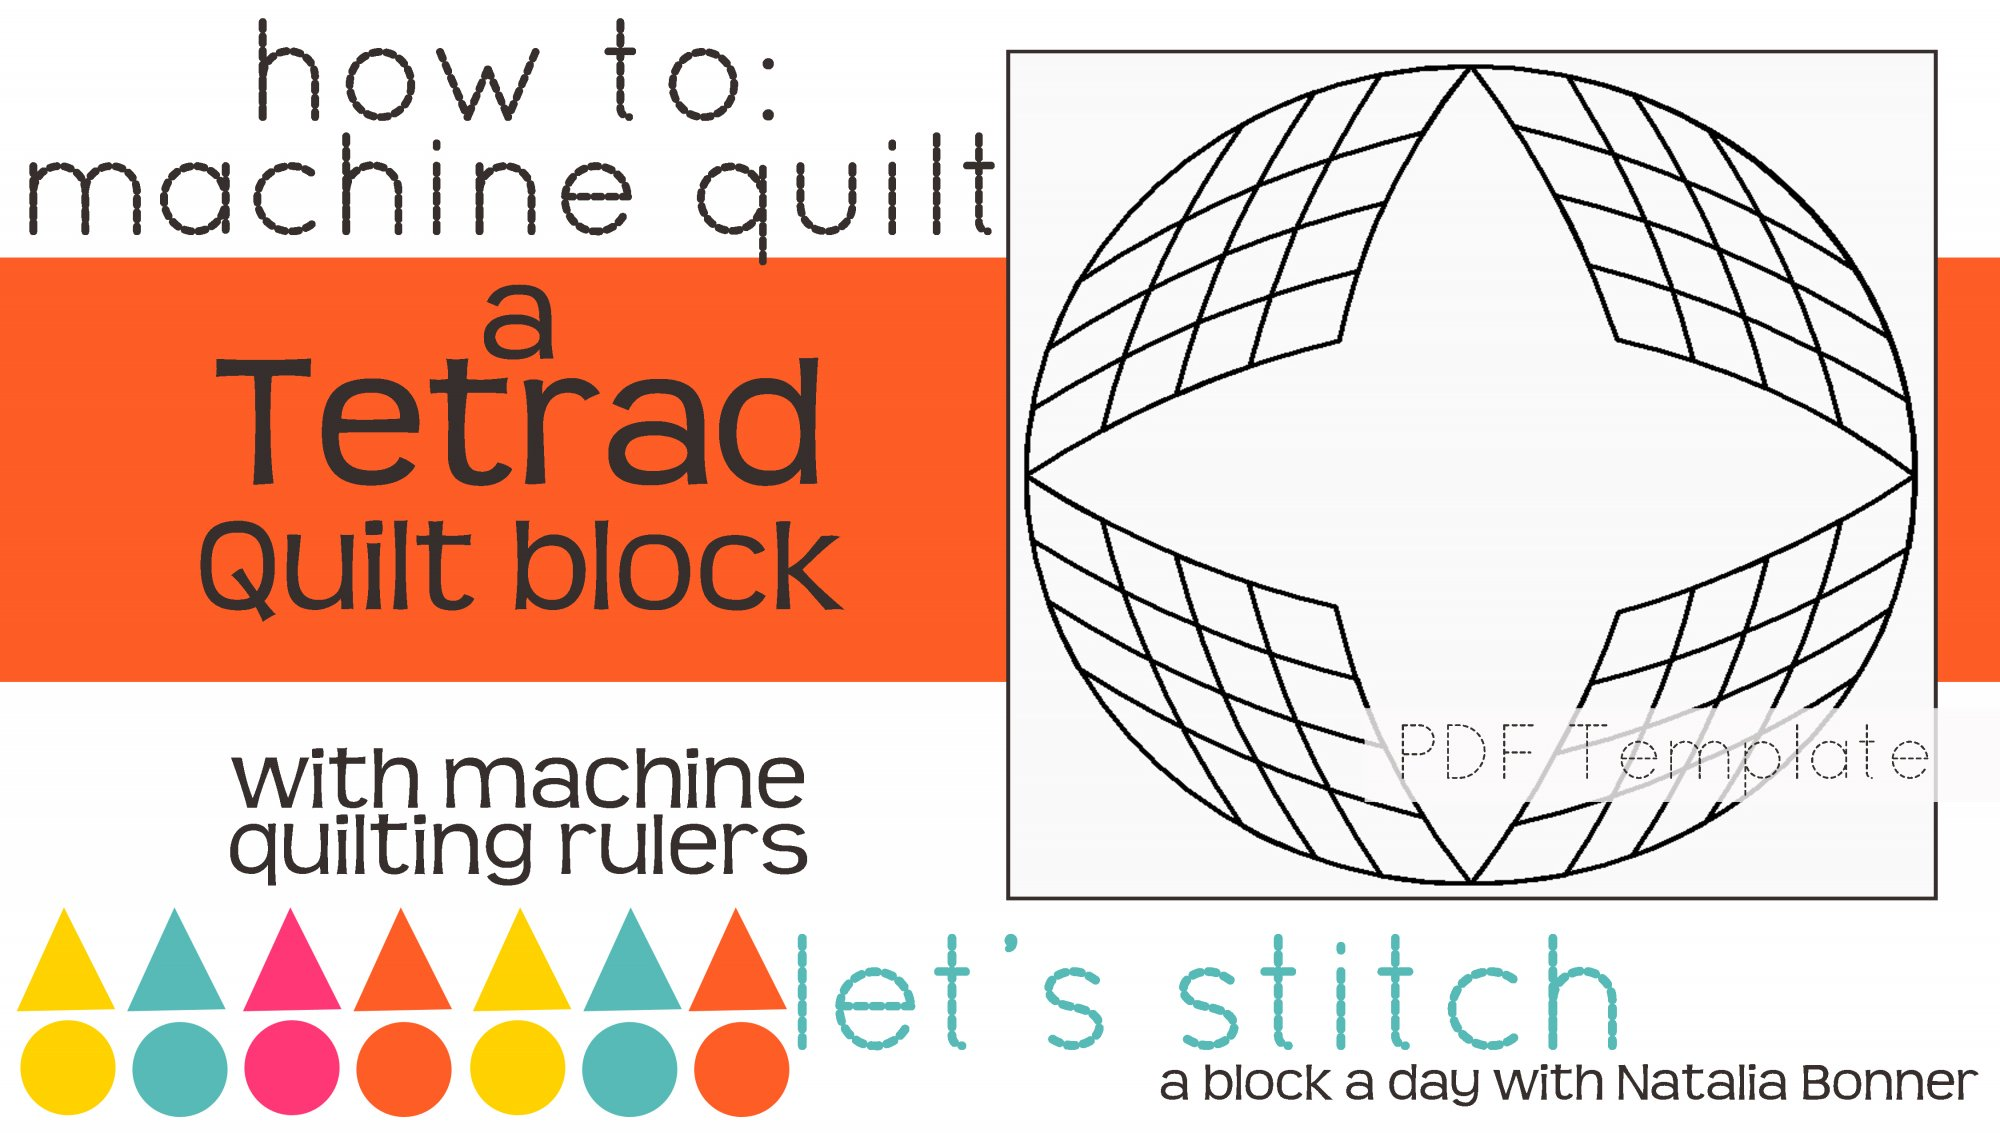 Let's Stitch - A Block a Day With Natalia Bonner - PDF - Tetrad